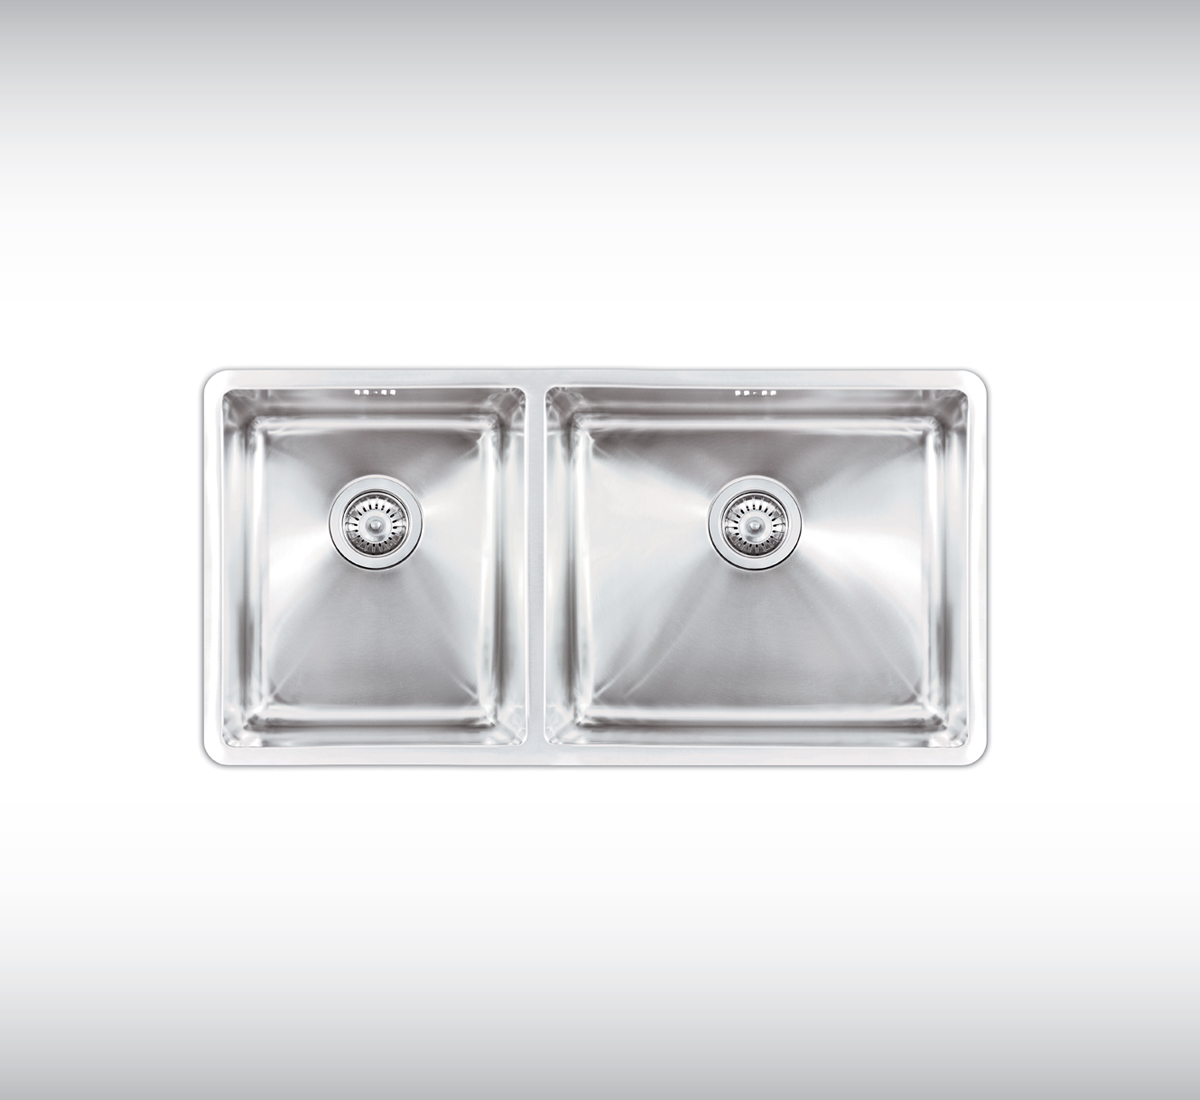 Stainless Steel Sinks Nz : Cabro Sergio Urbane Stainless Steel Sink UBD-930 Double Bowl